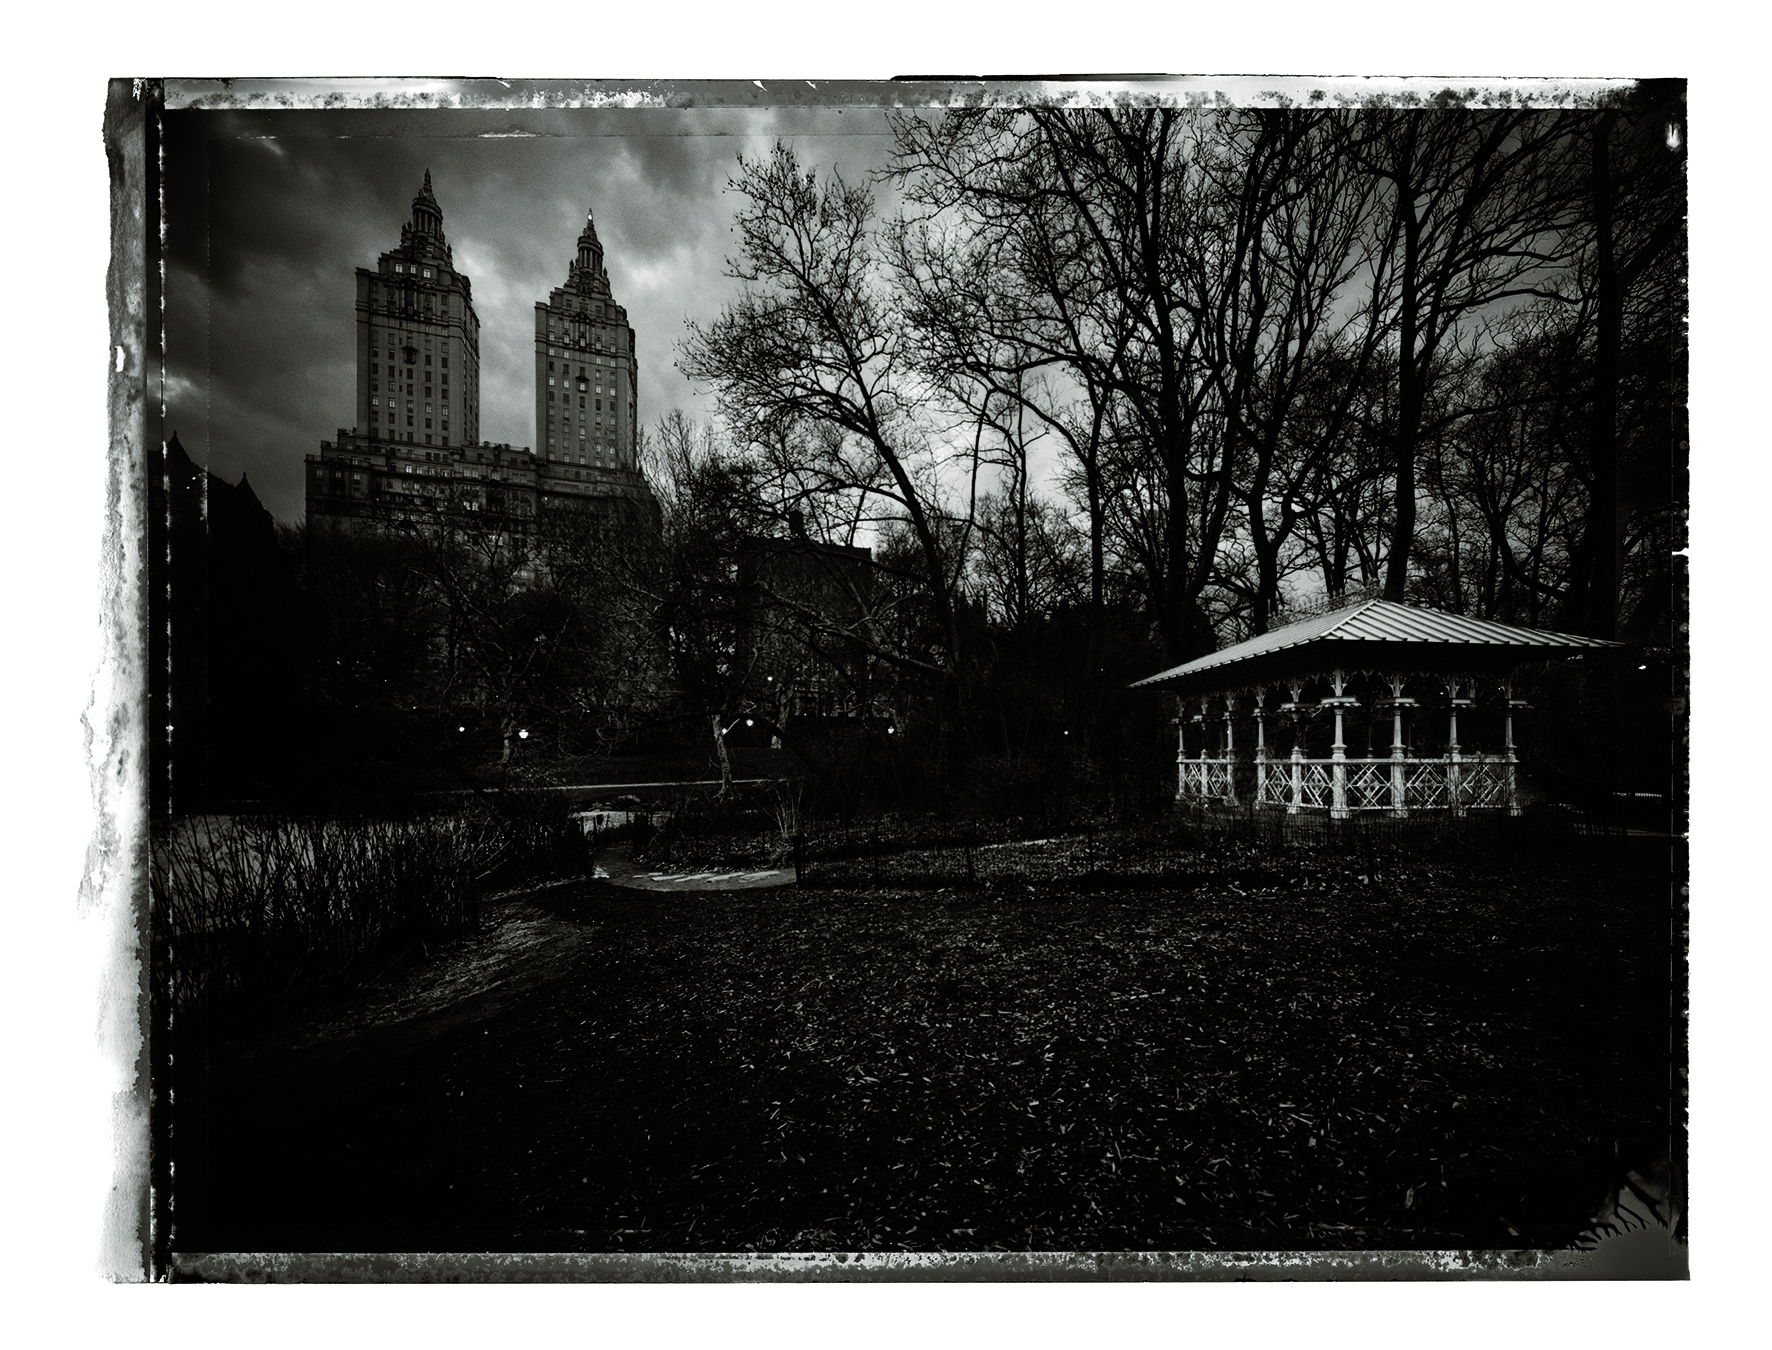 Central Park - (c) Christopher Thomas